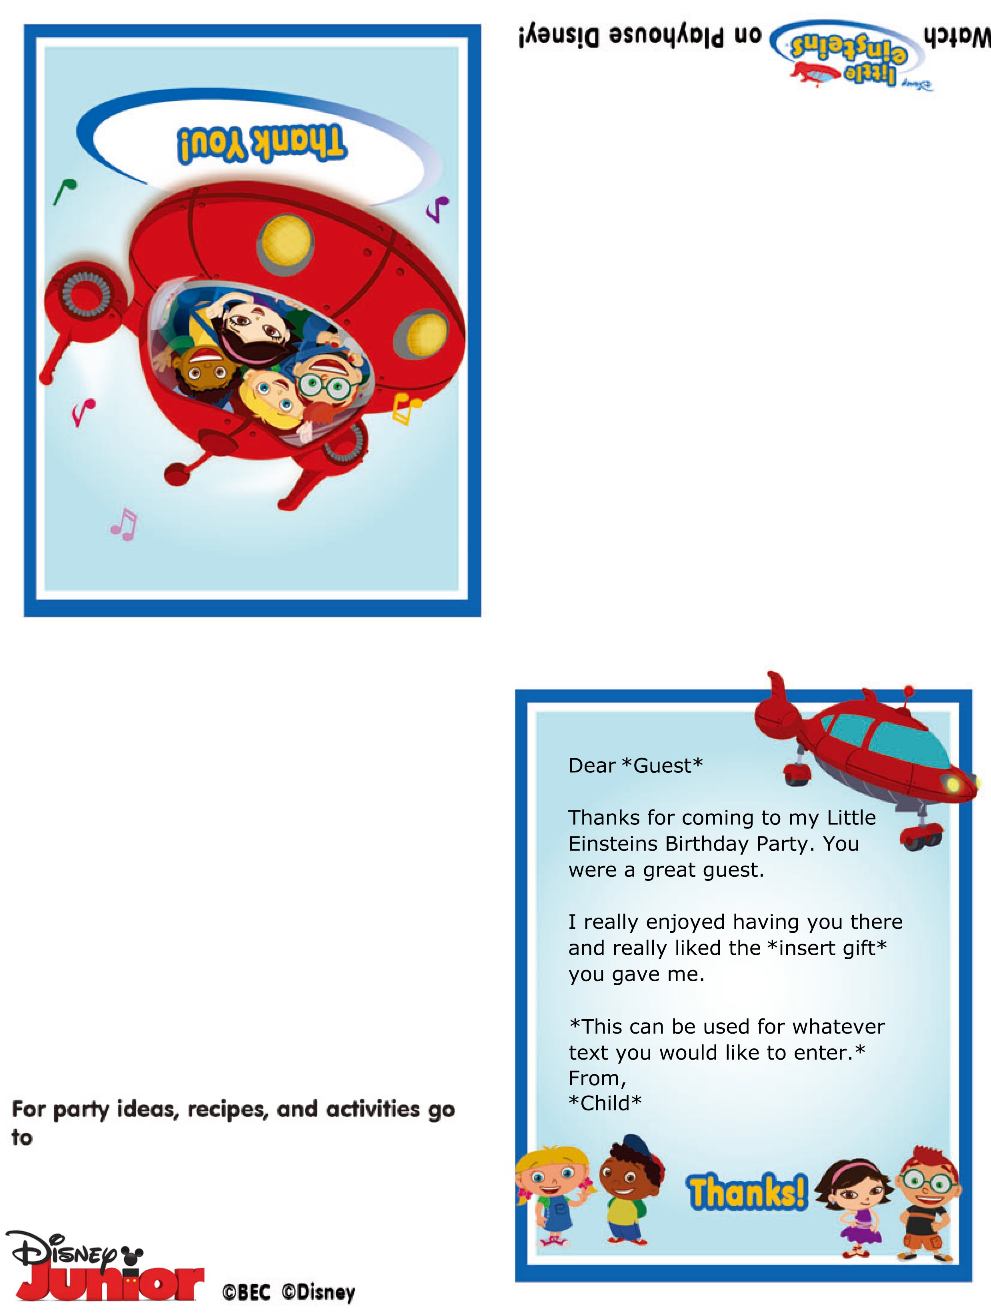 http://disneyjunior.disney.co.th/little-einsteins-thank-you-notes ...